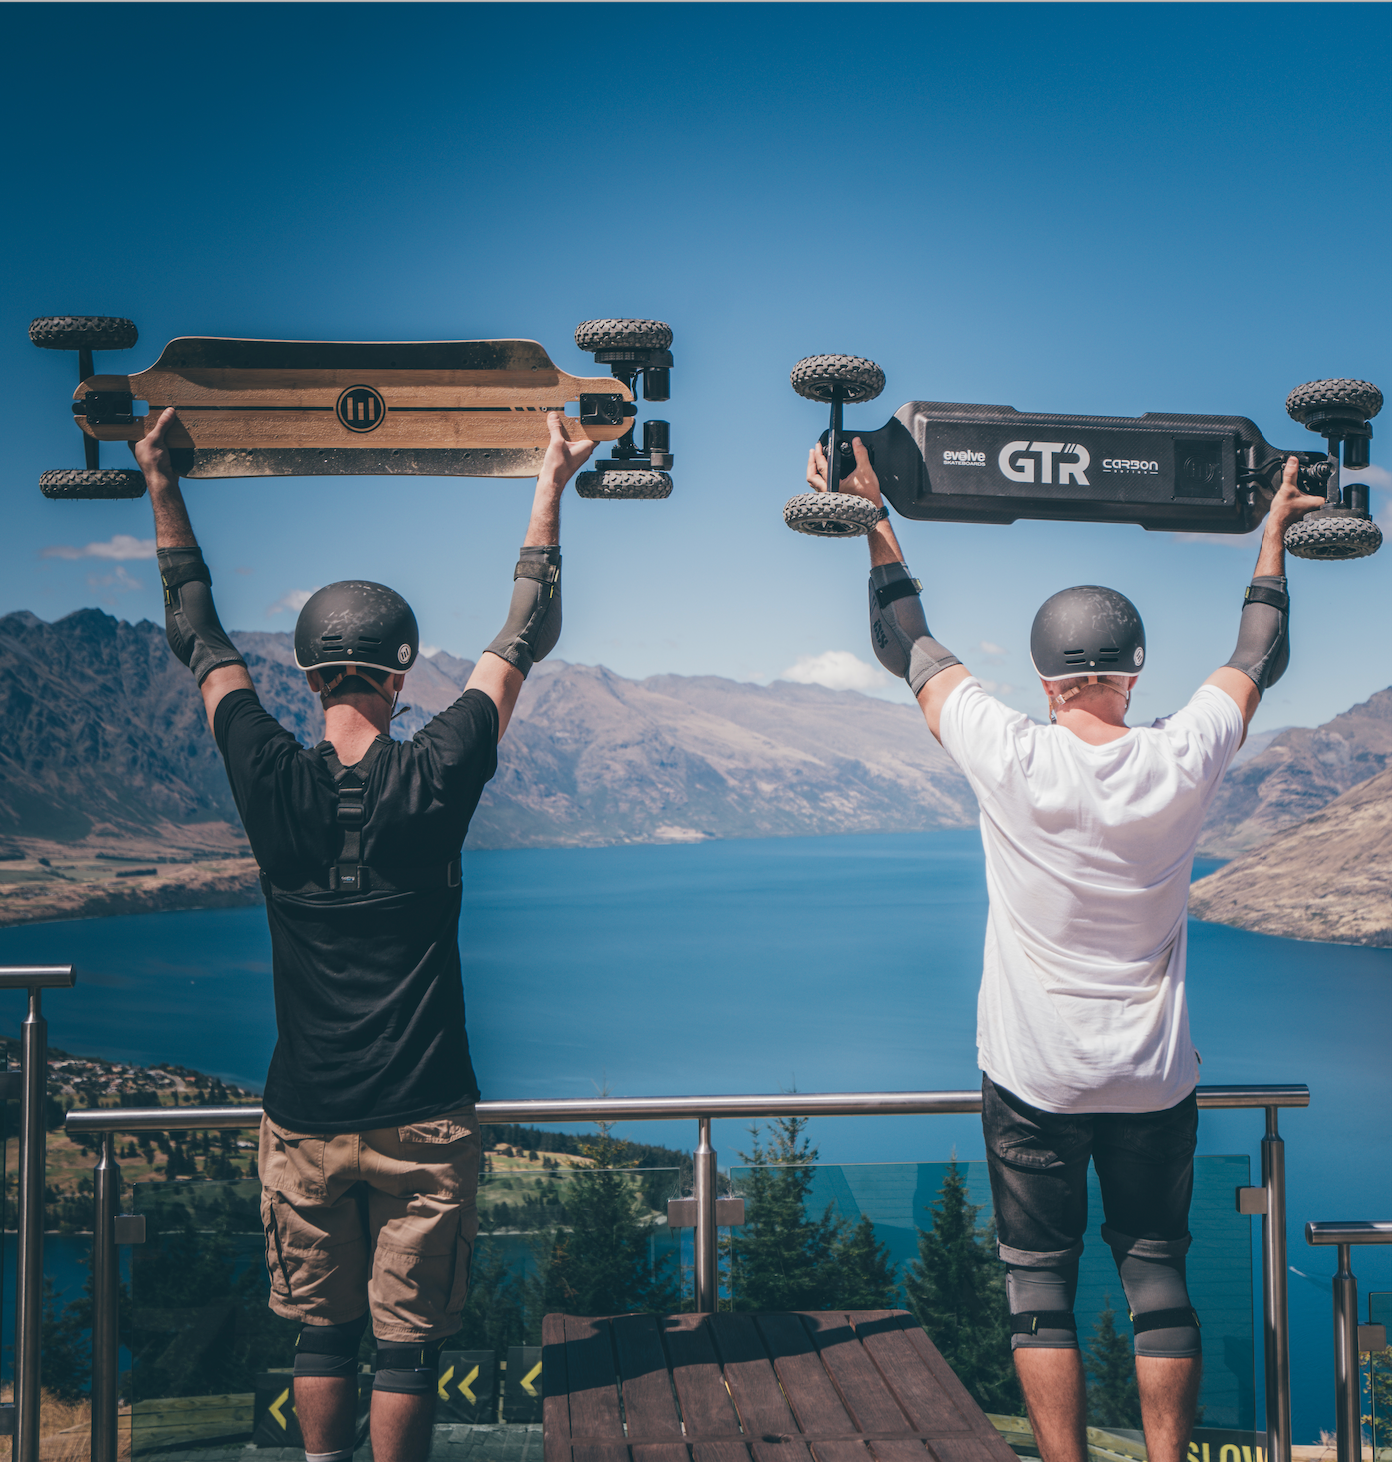 riding an electric skateboard with mates